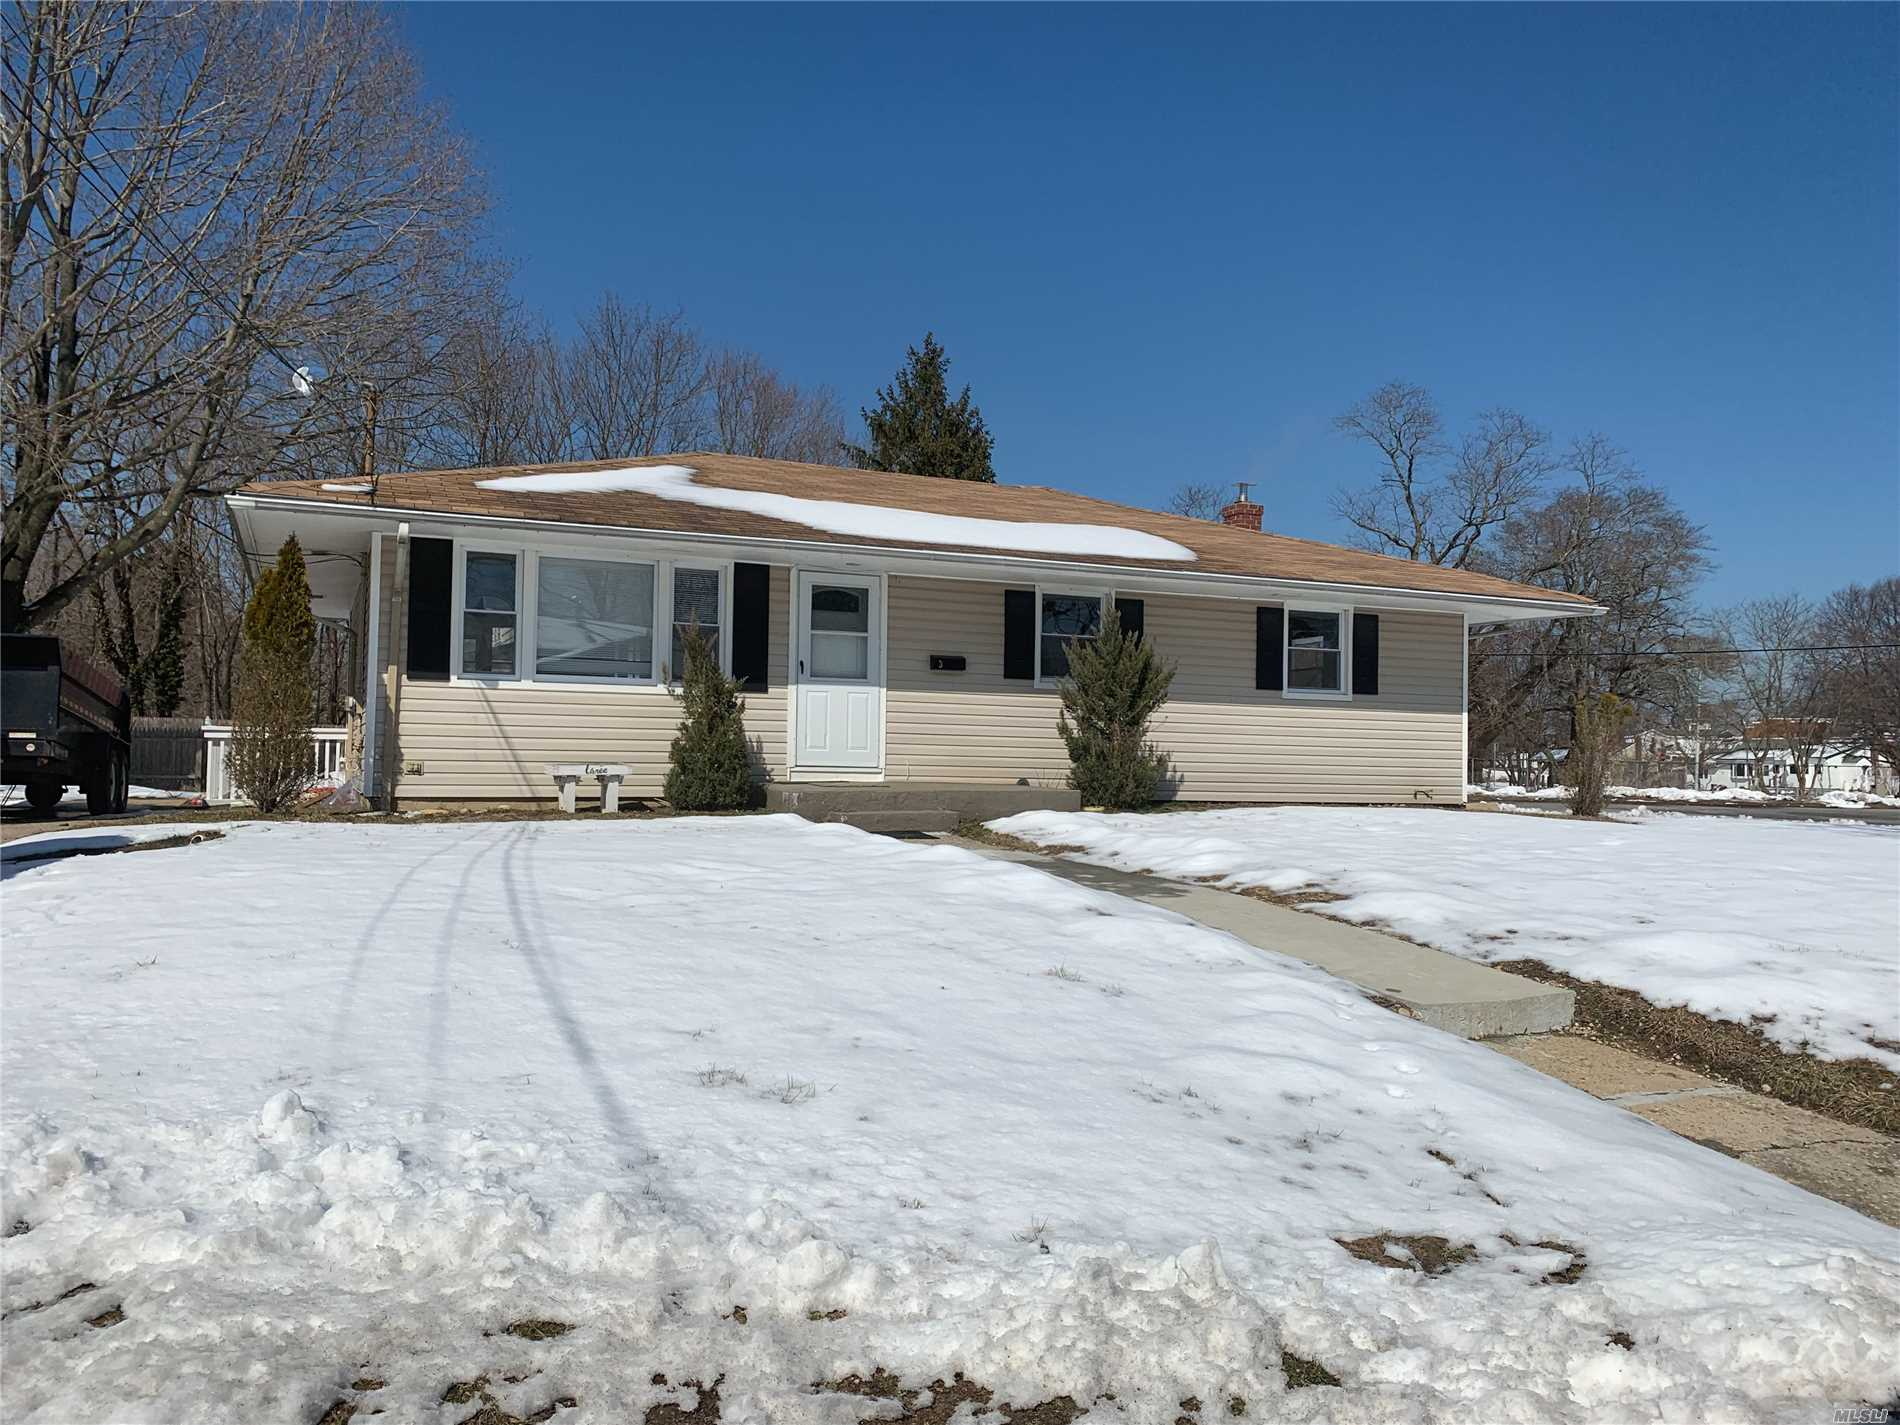 Cozy Home, Freshly Painted , Hardwood Throughout , Close To All Transportation, Shopping Center .....